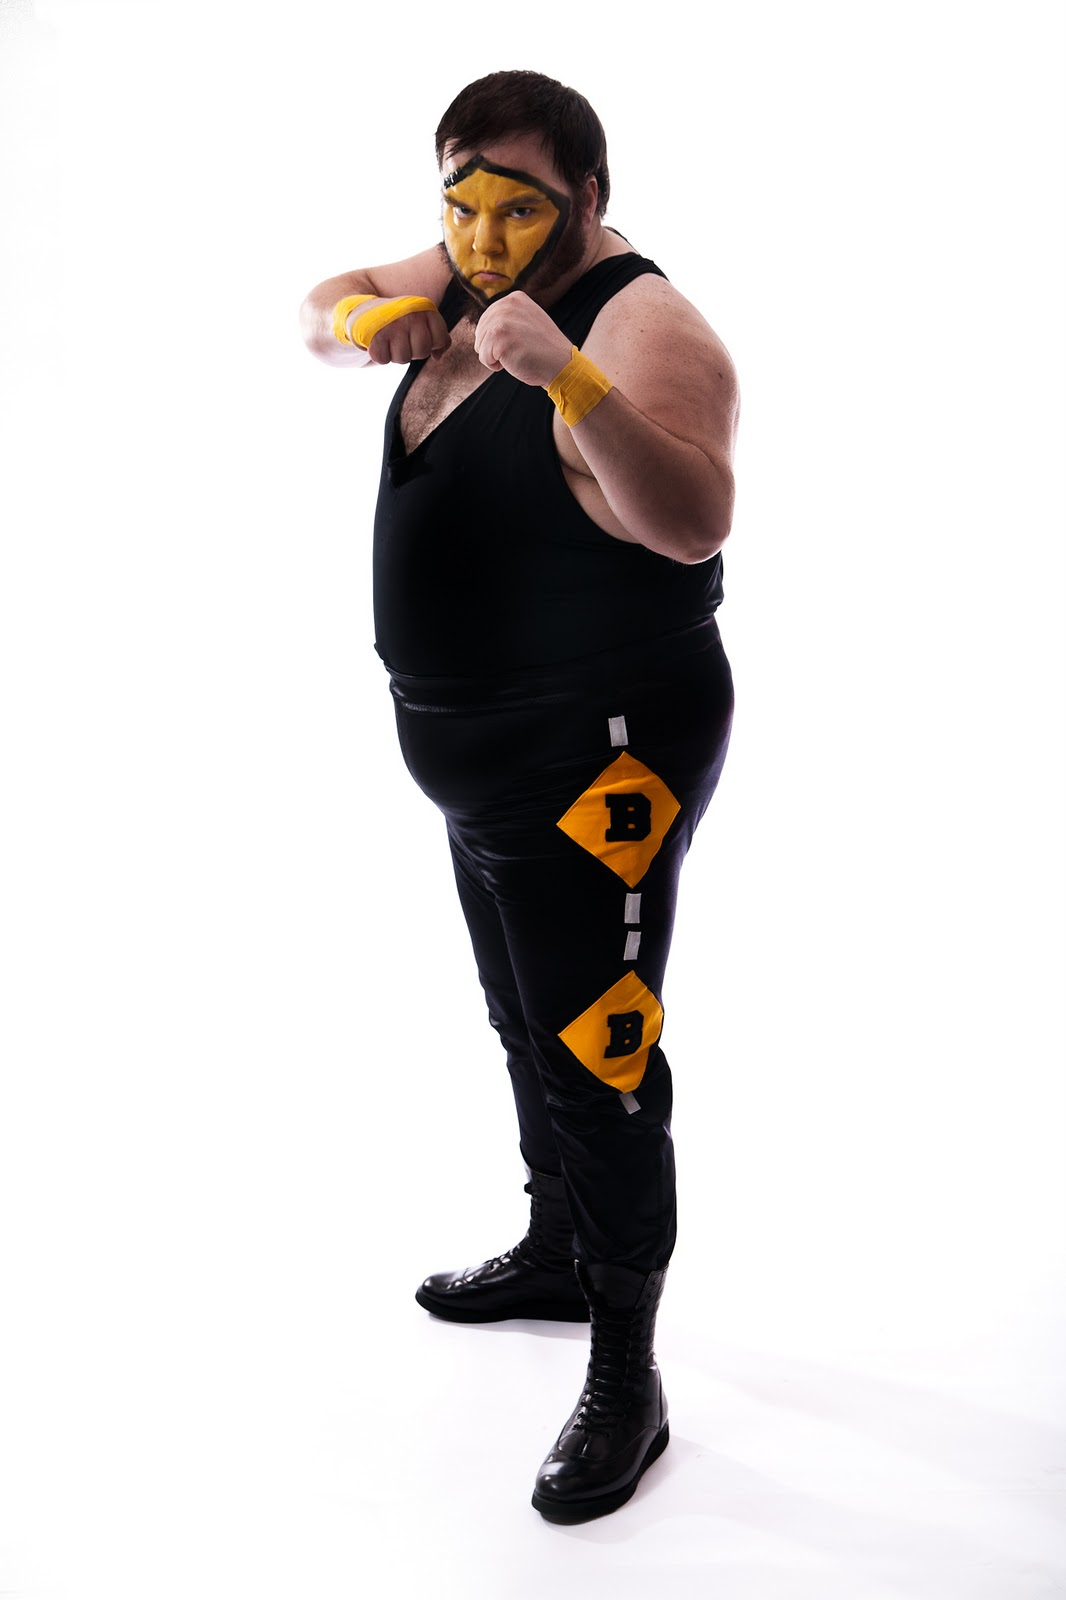 Barricade (Canadian wrestler)